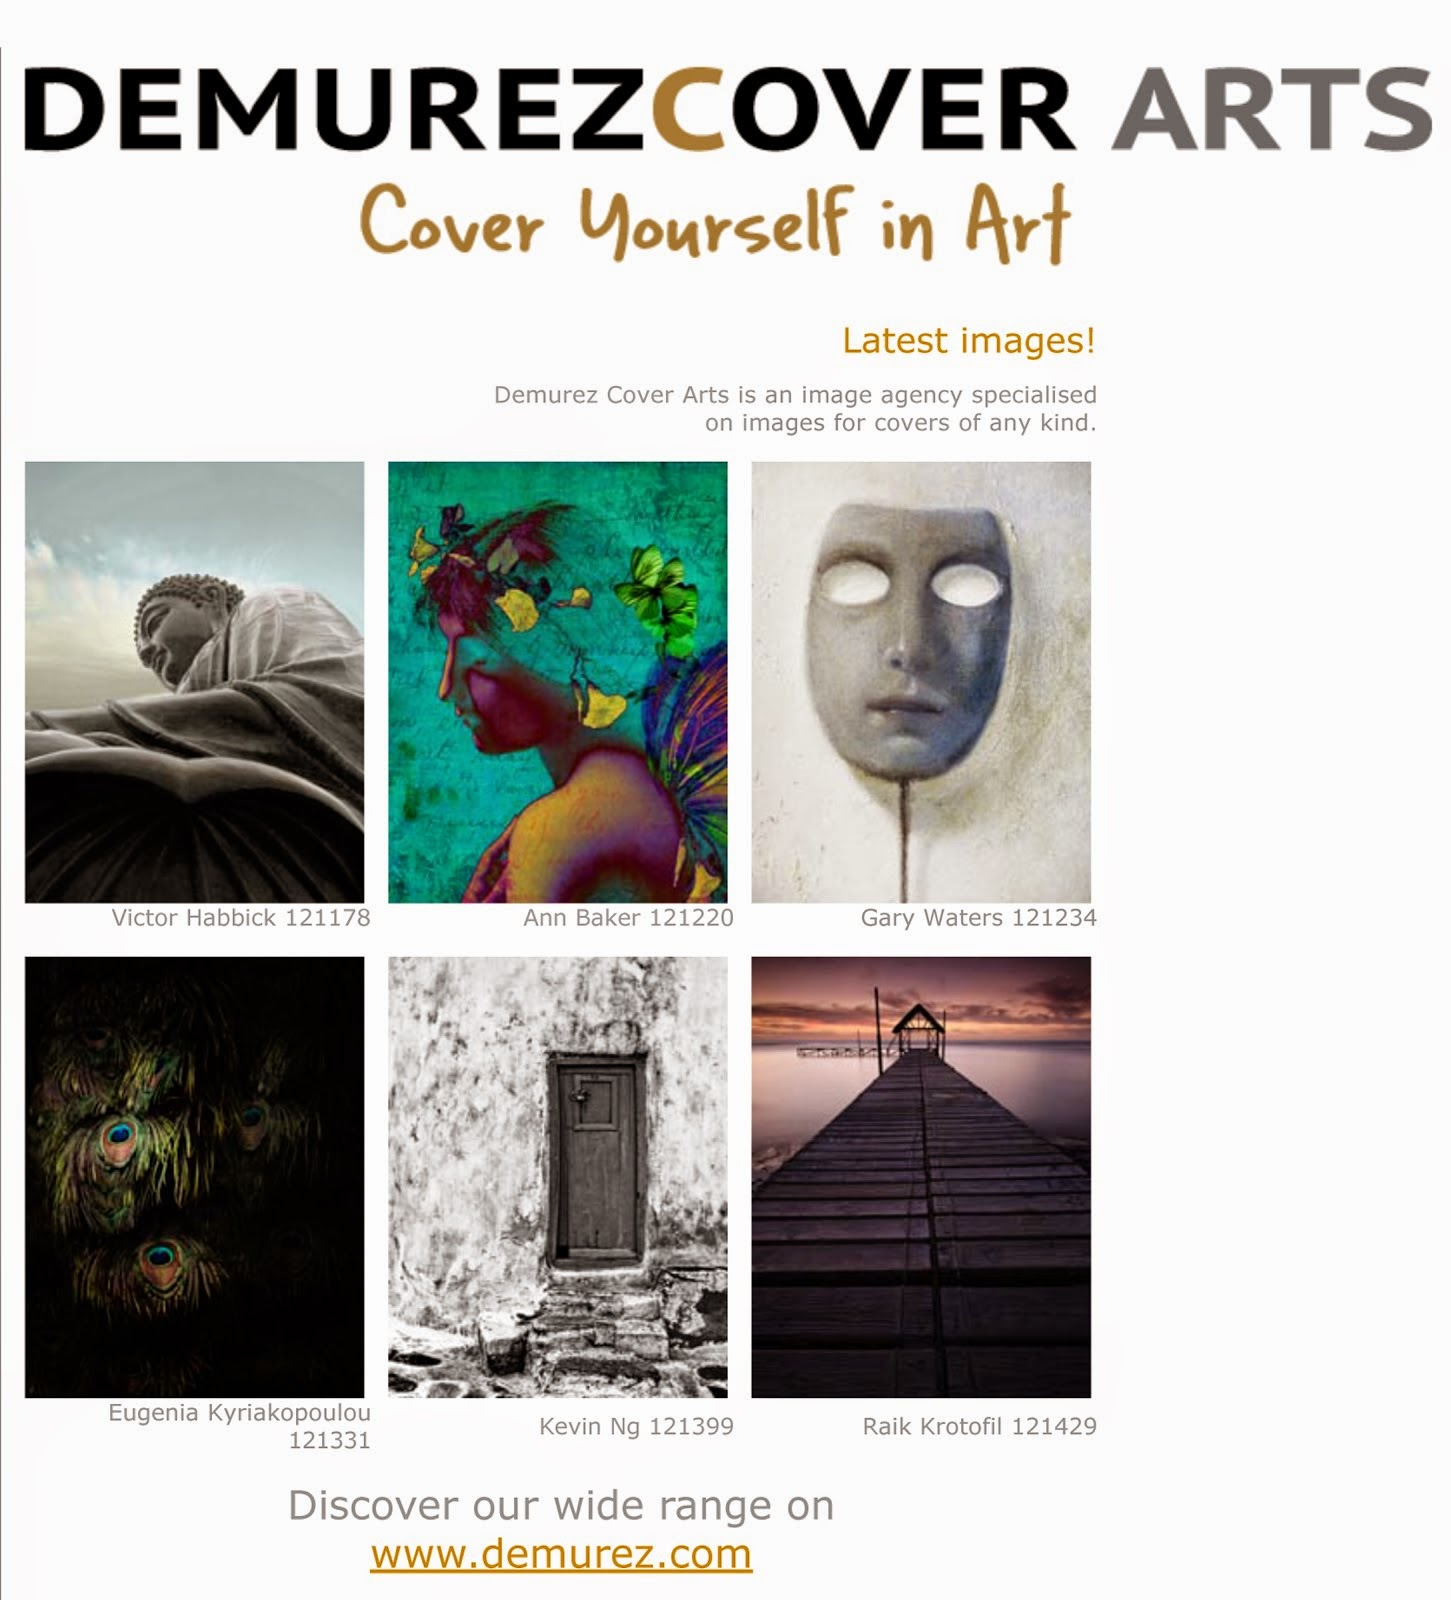 DEMUREZ COVER ARTS